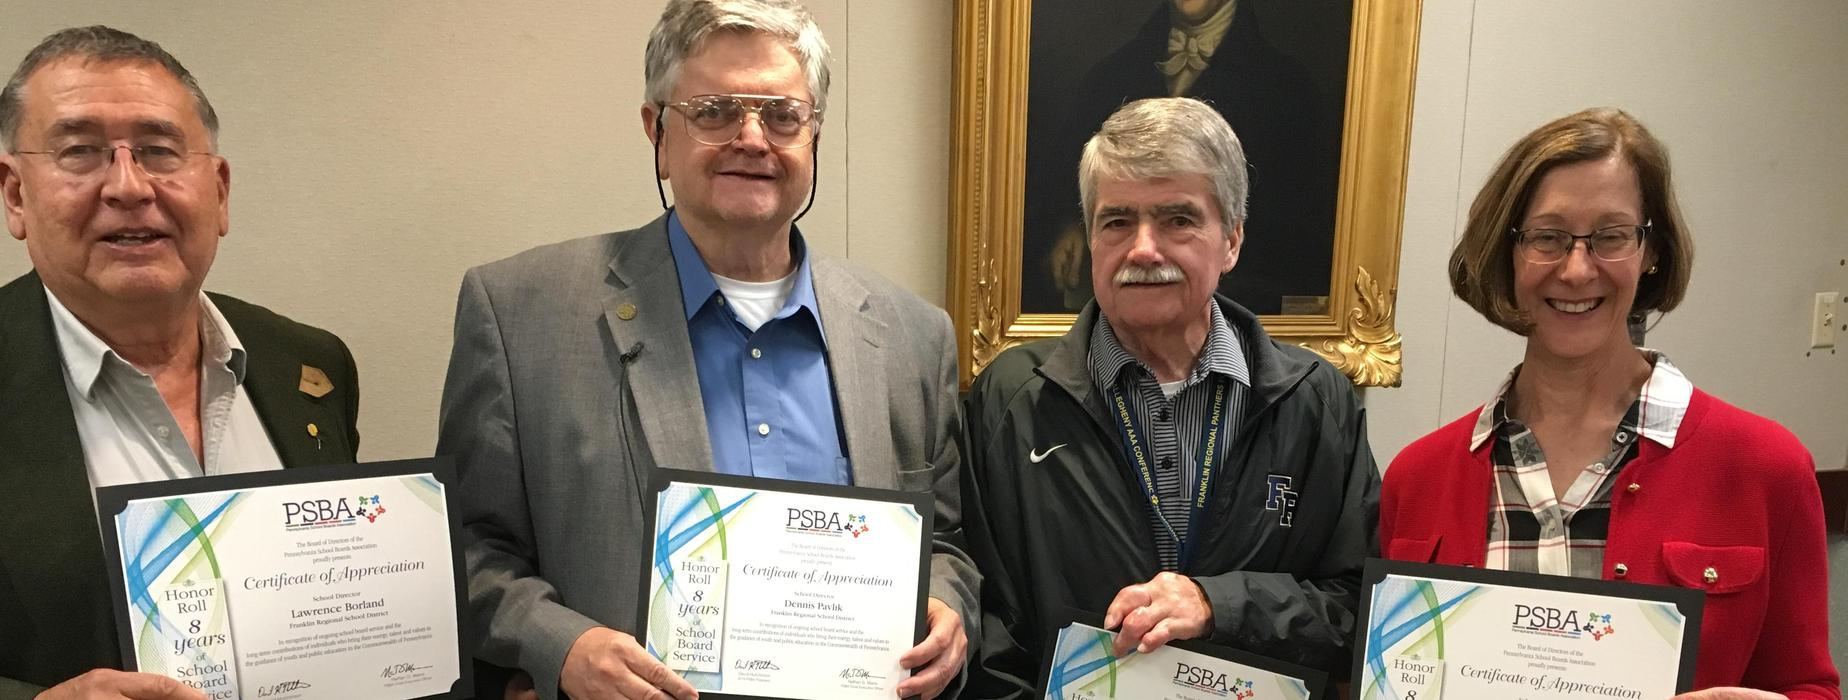 PSBA honors four FR School Directors with service award certificates. Shown are Dr. Larry Borland, Dennis Pavlik, Herb Yingling, and Jane Tower.